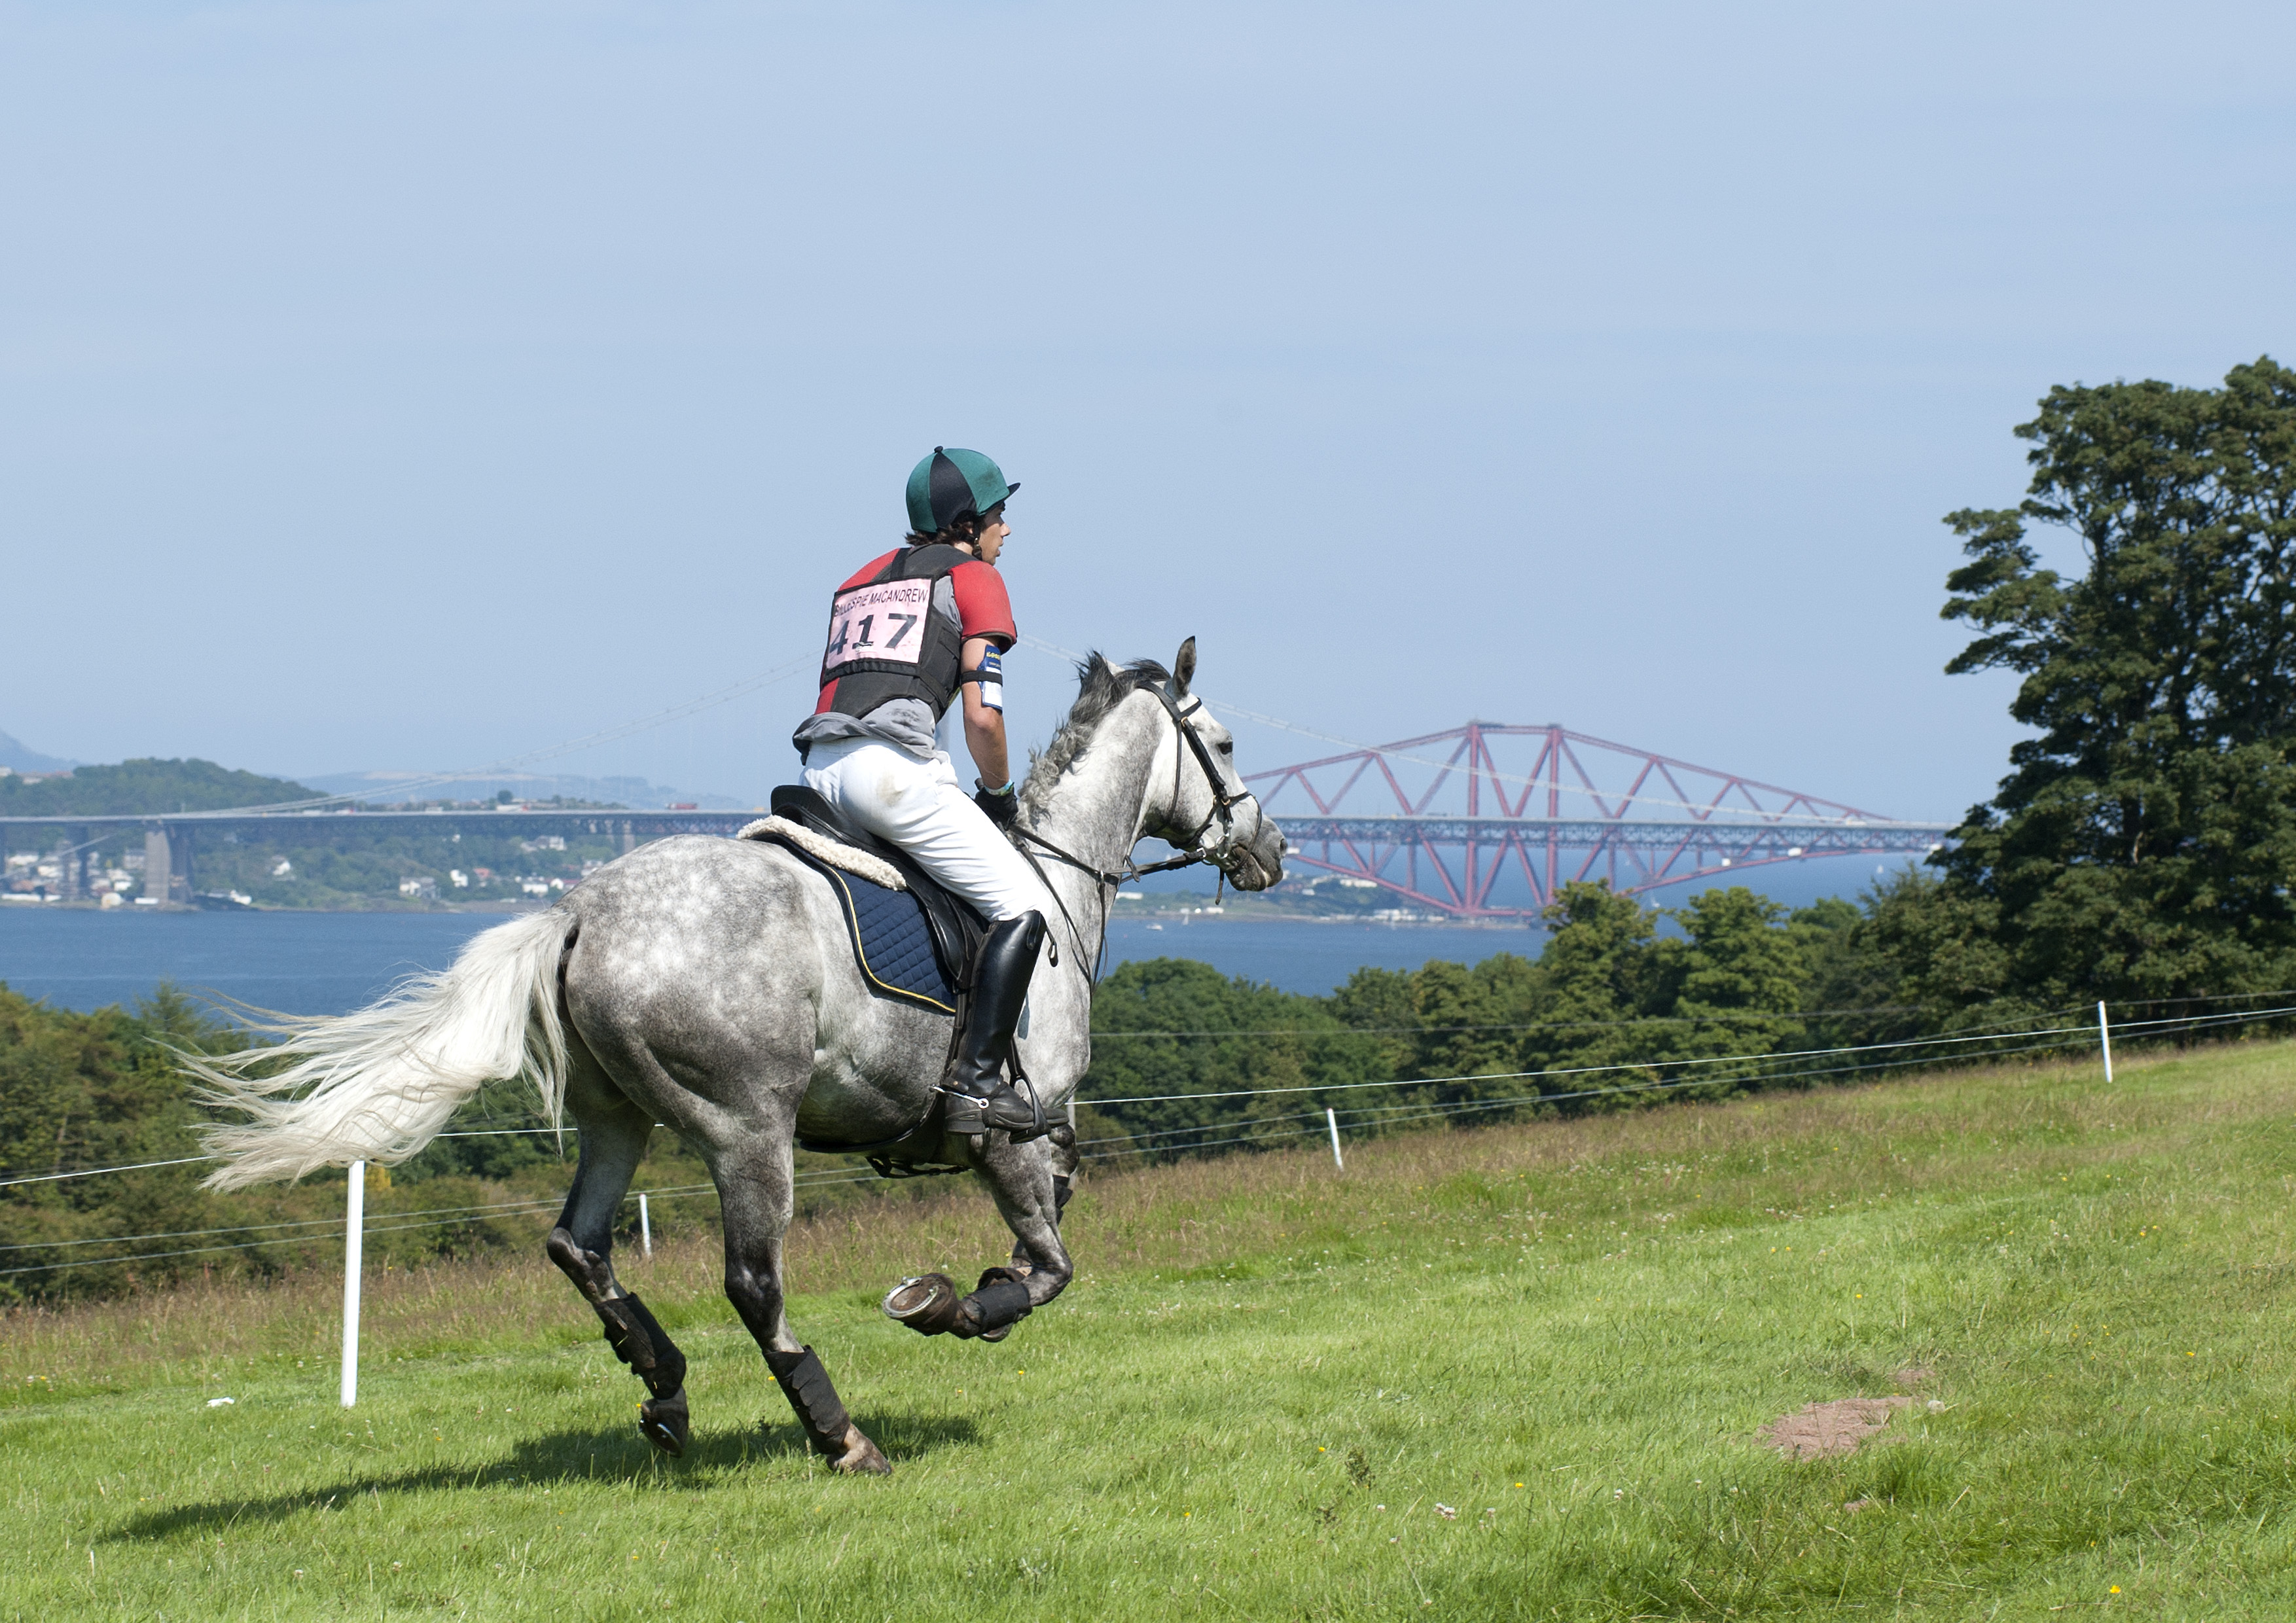 Hopetoun rider - Hopetoun to host two Equine events in 2013.